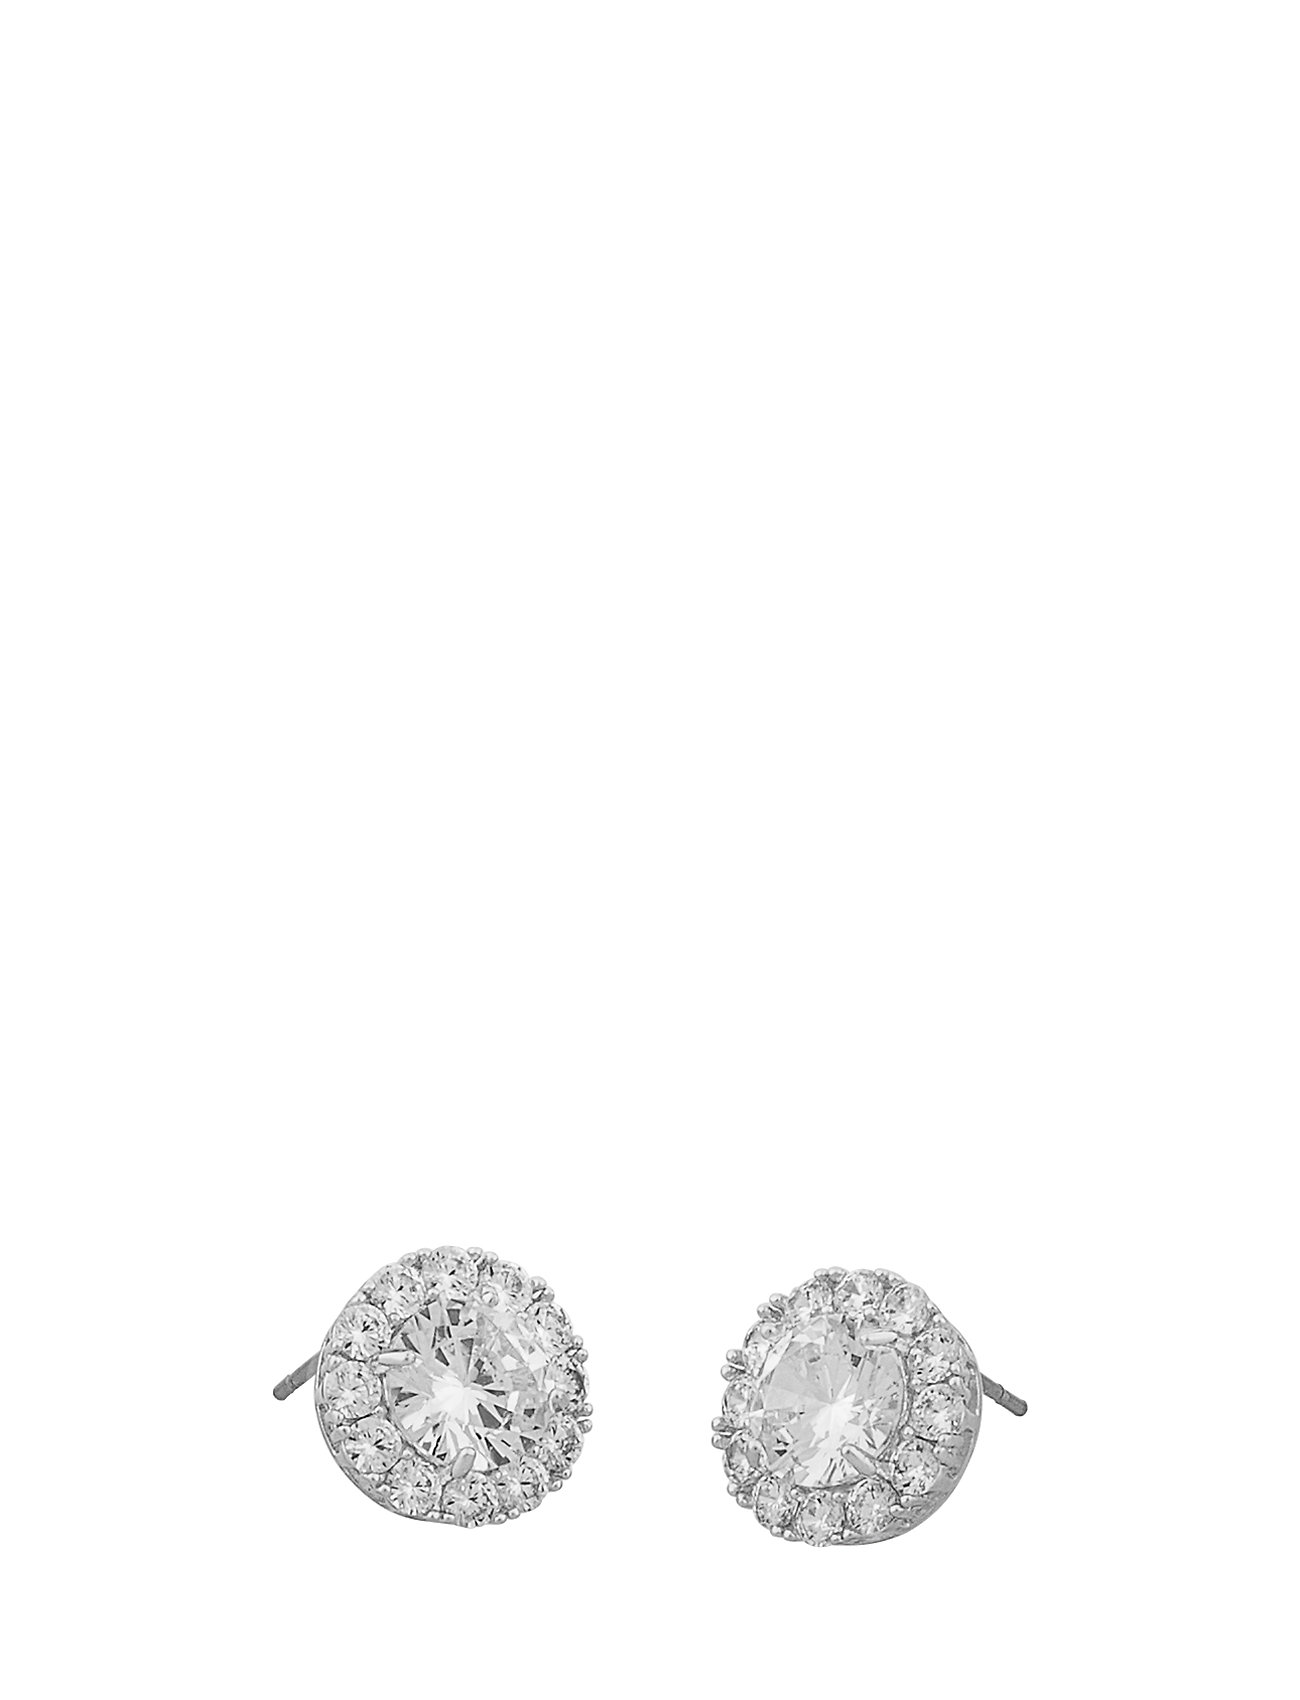 Image of Lex St Ear S/Clear Accessories Jewellery Earrings Studs Sølv SNÖ Of Sweden (3484677585)